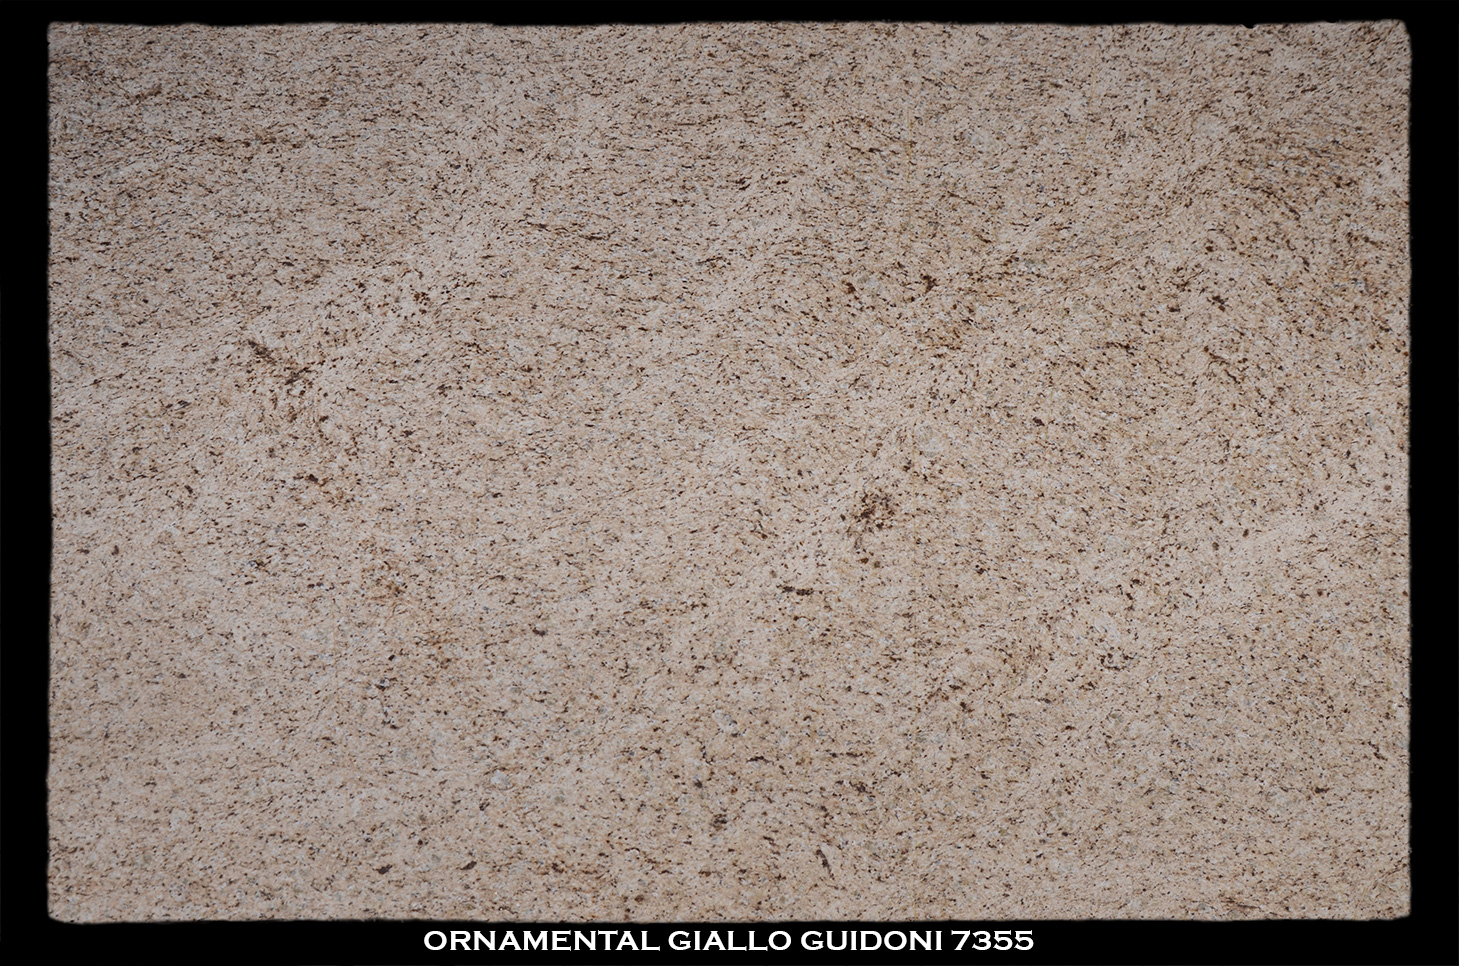 ORNAMENTAL-GIALLO-GUIDONI-7355-SLAB